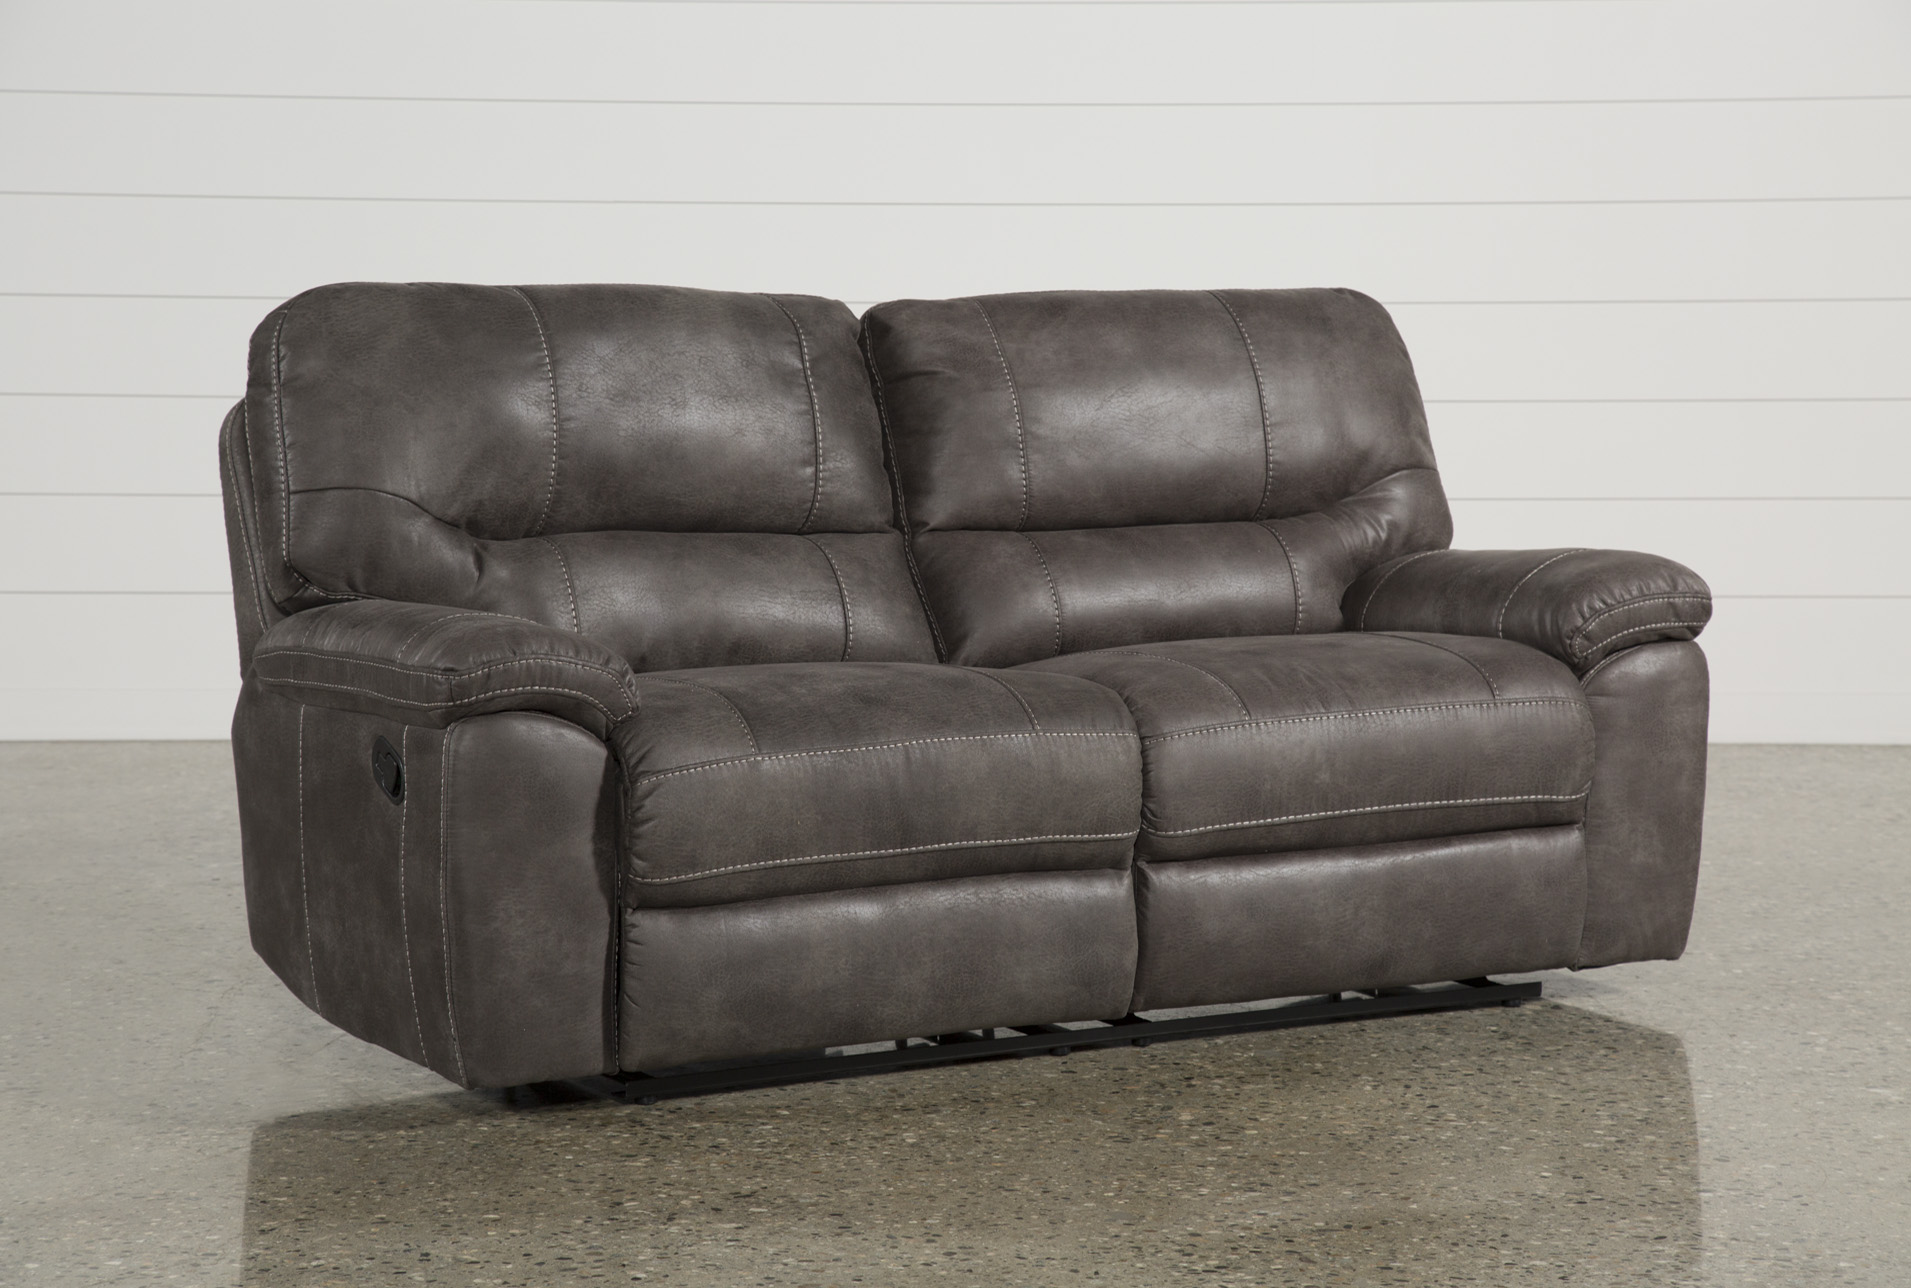 Neve Grey Reclining Sofa (Qty: 1) Has Been Successfully Added To Your Cart.